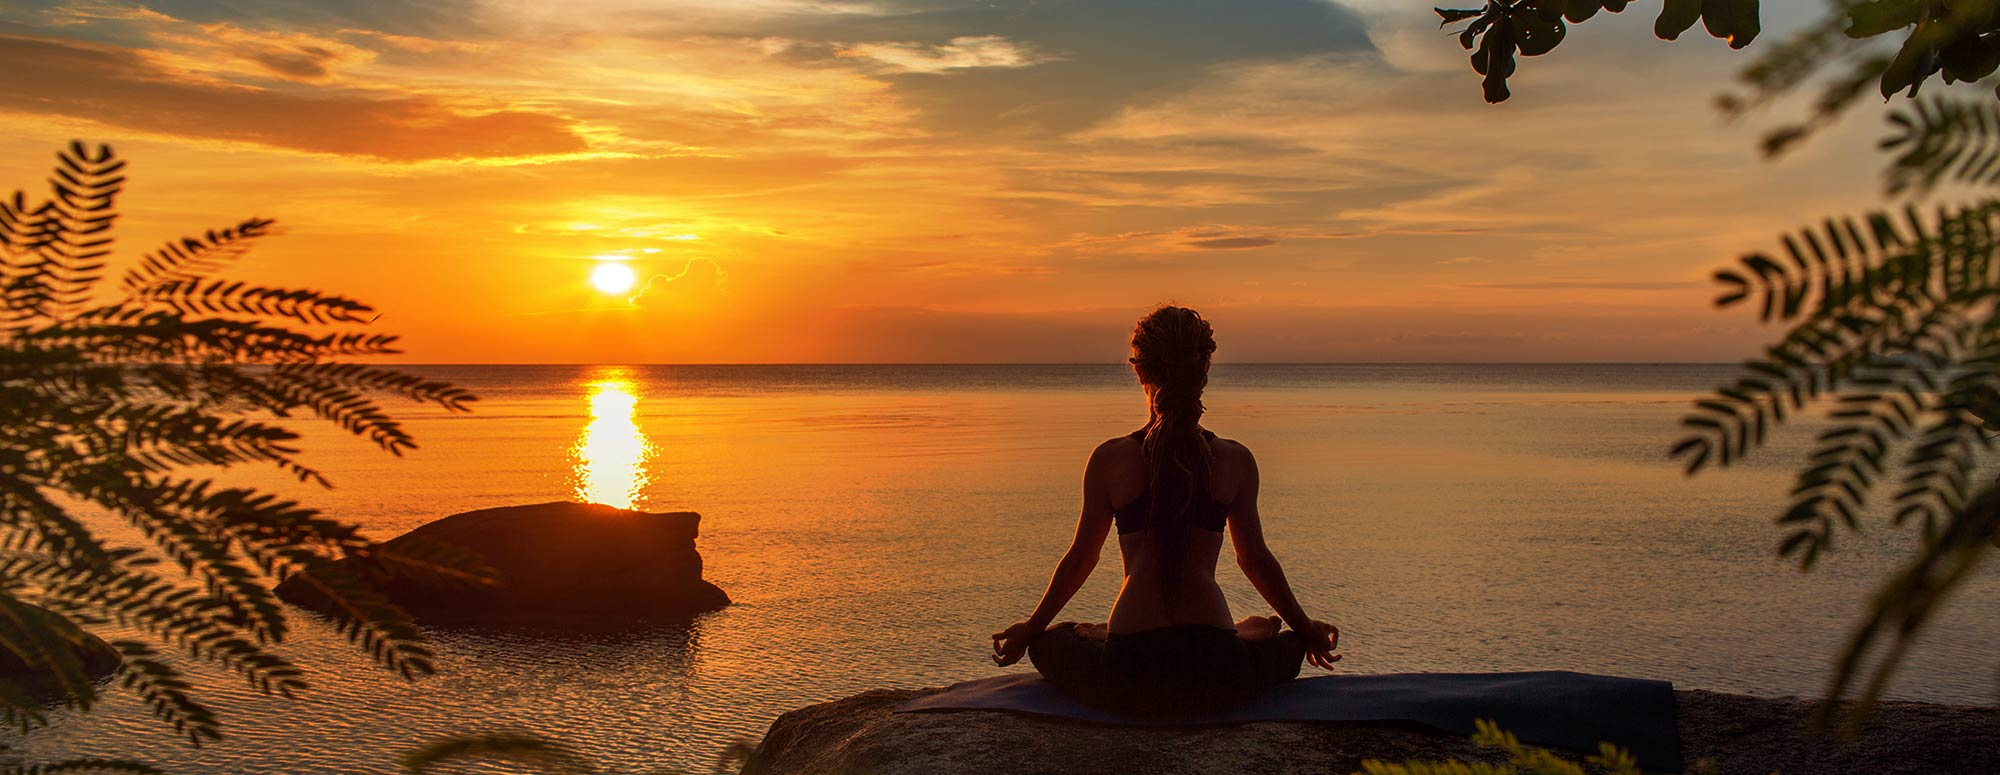 Woman Doing Yoga by Sunset